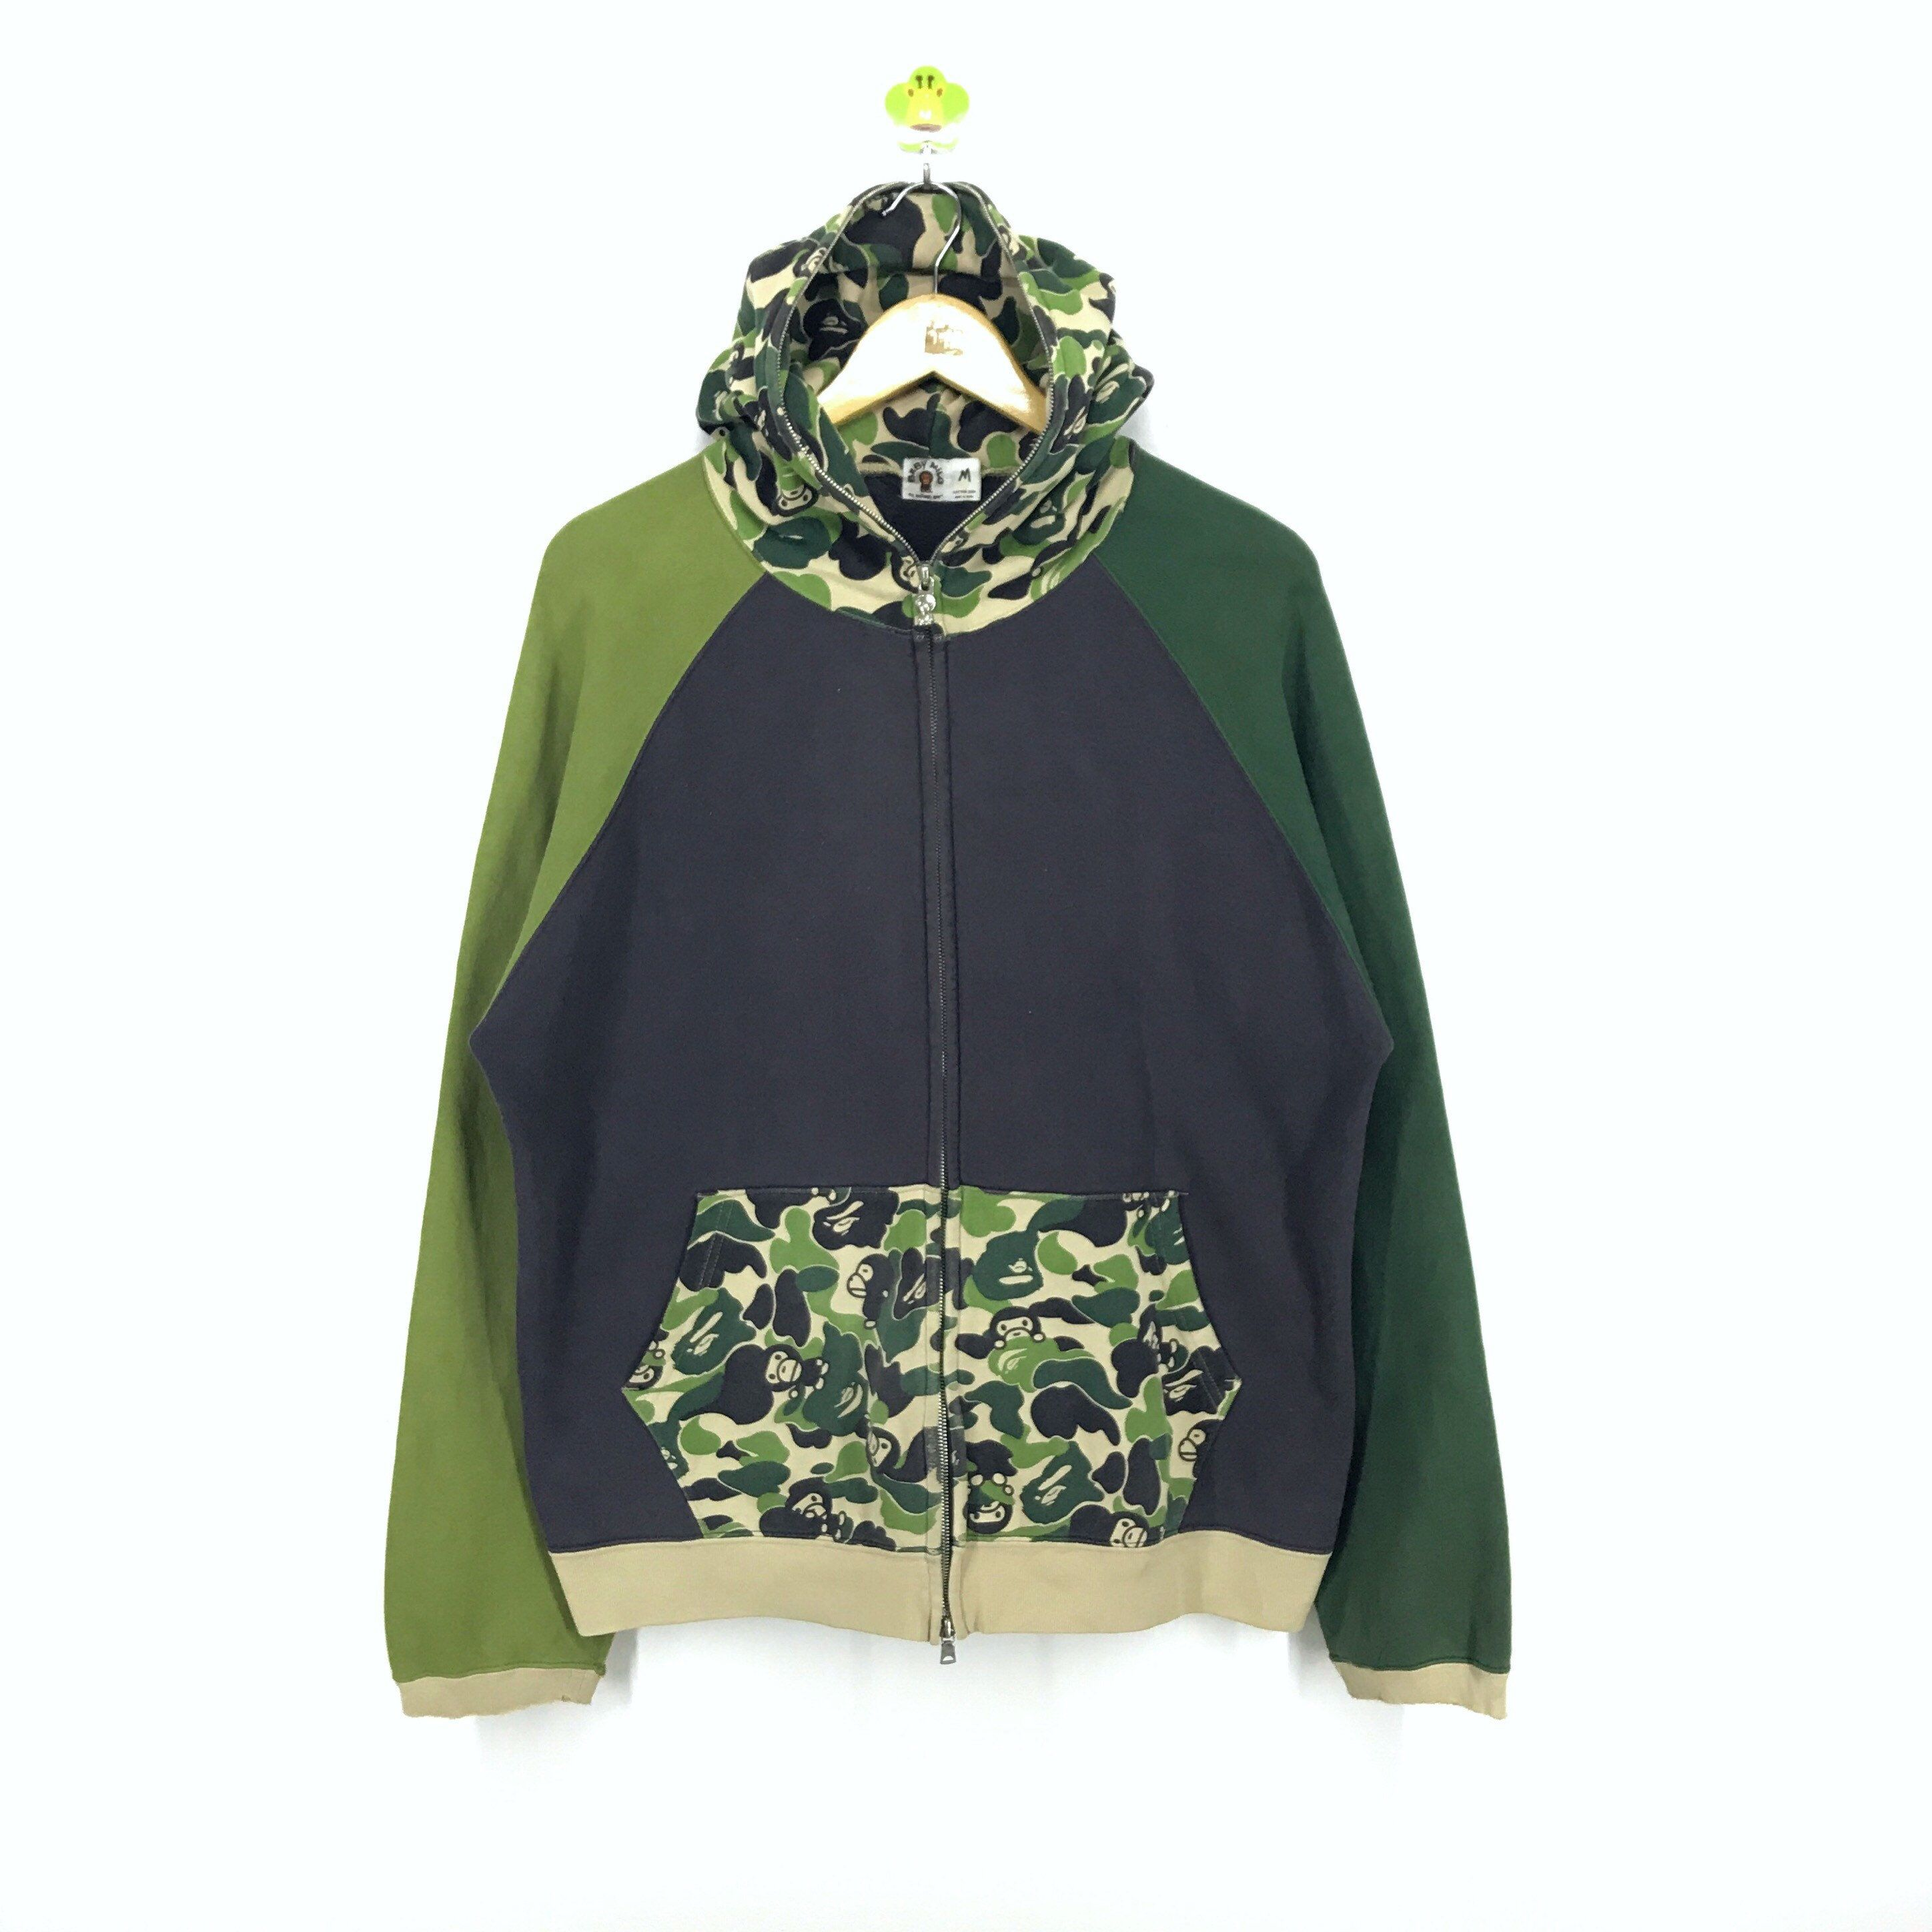 b70a21856032 Vintage 90s A Bathing Ape Baby Milo Sweater Pullover Hoodie Fullzip  Camouflaged Size M  abathingape  hoodie